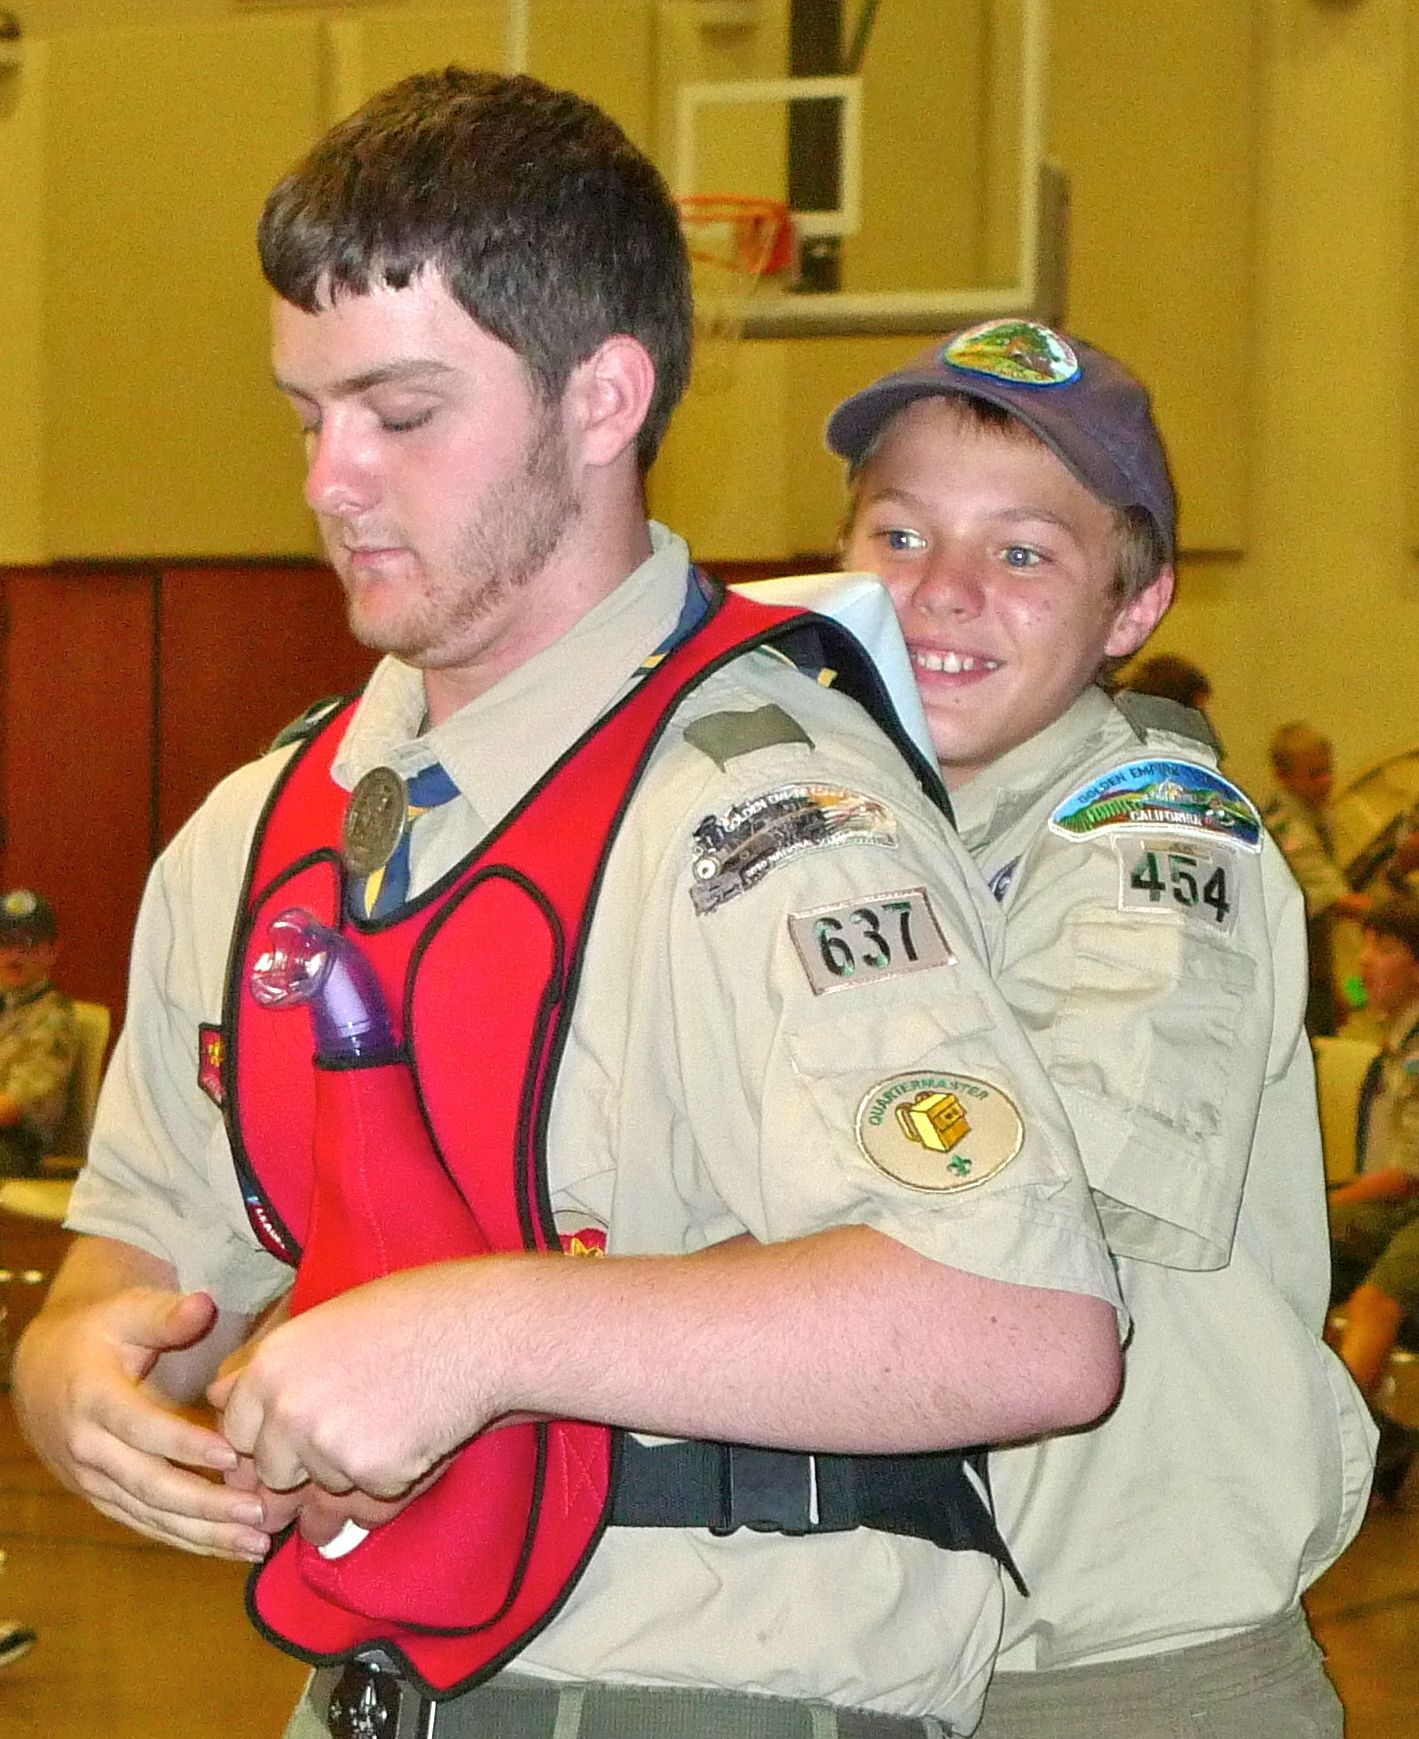 Boy Scouts Practice Their Choking Rescue Skills